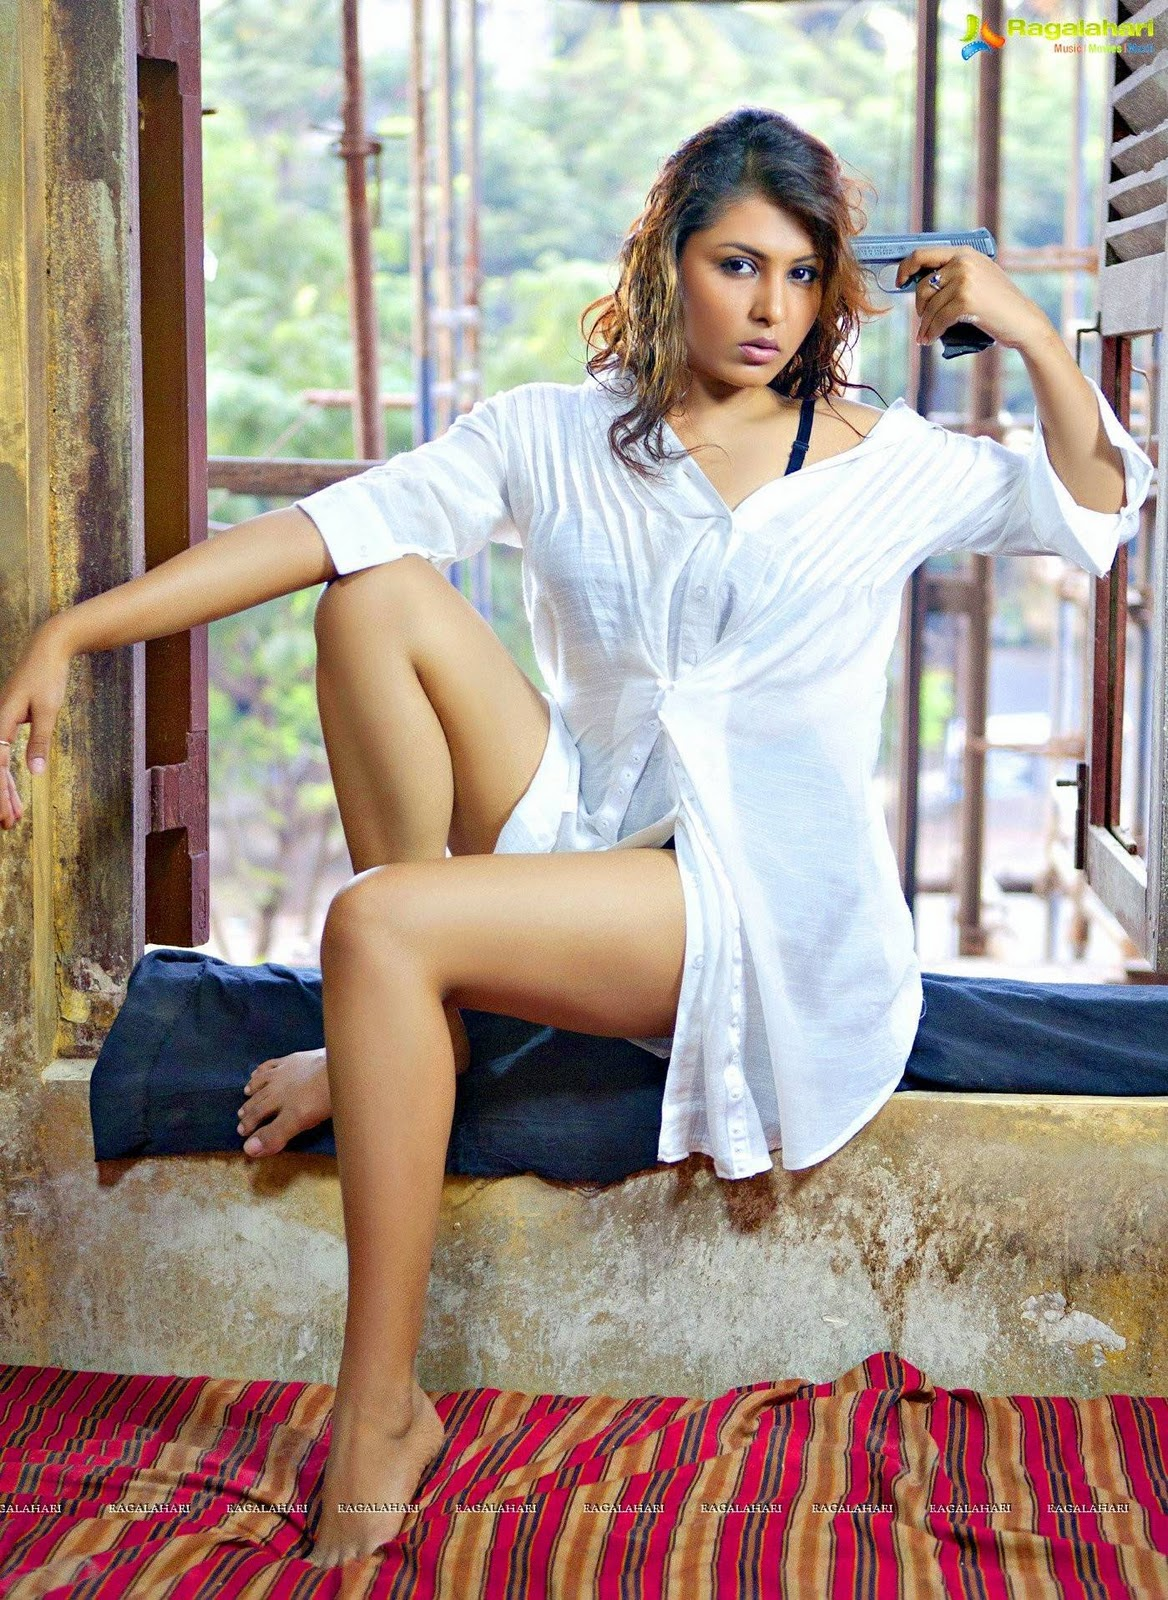 South Indian Actress Hot Photos, Hot Videos South Indian -2010